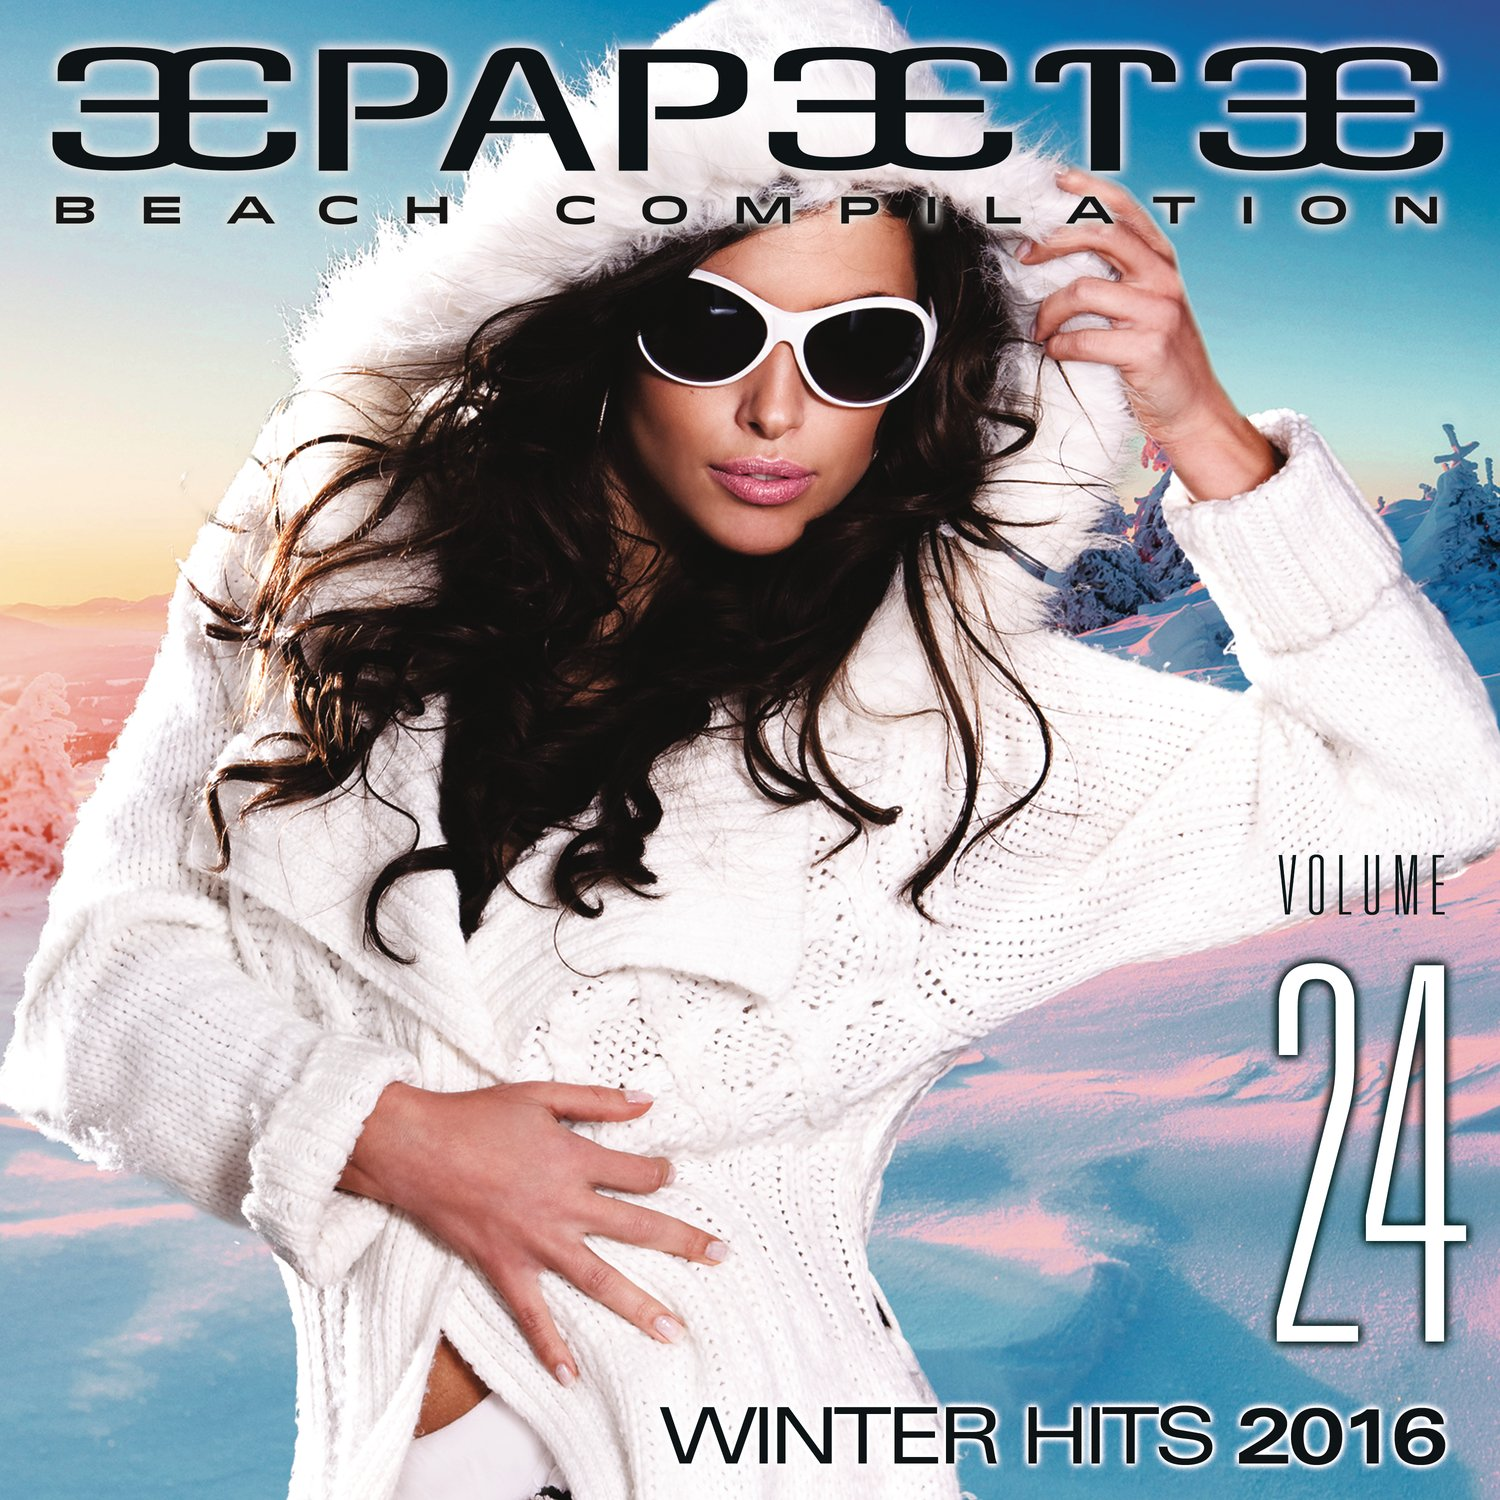 Papeete Beach Compilation, Vol. 24